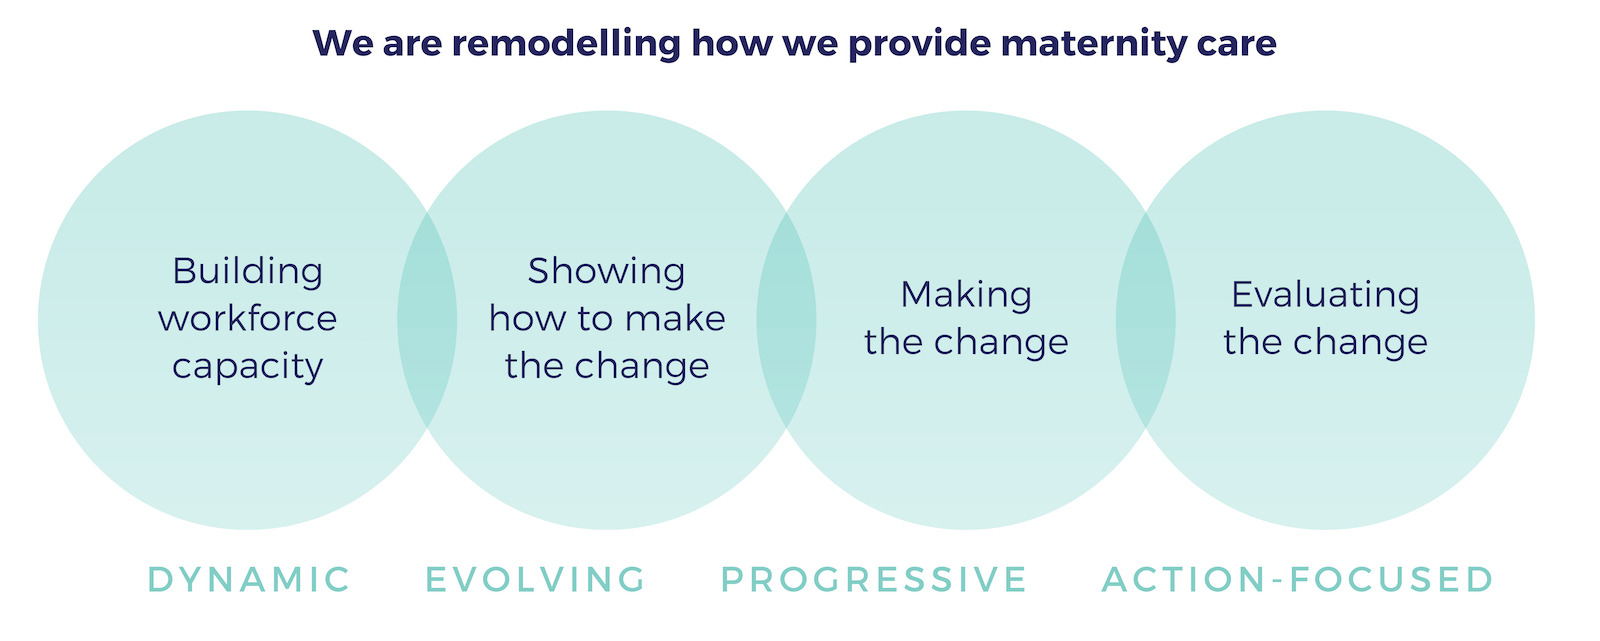 Dynamic (building workforce capacity), Evolving (showing how to make the change), Progressive (making the change), Action-focused (evaluating the change).